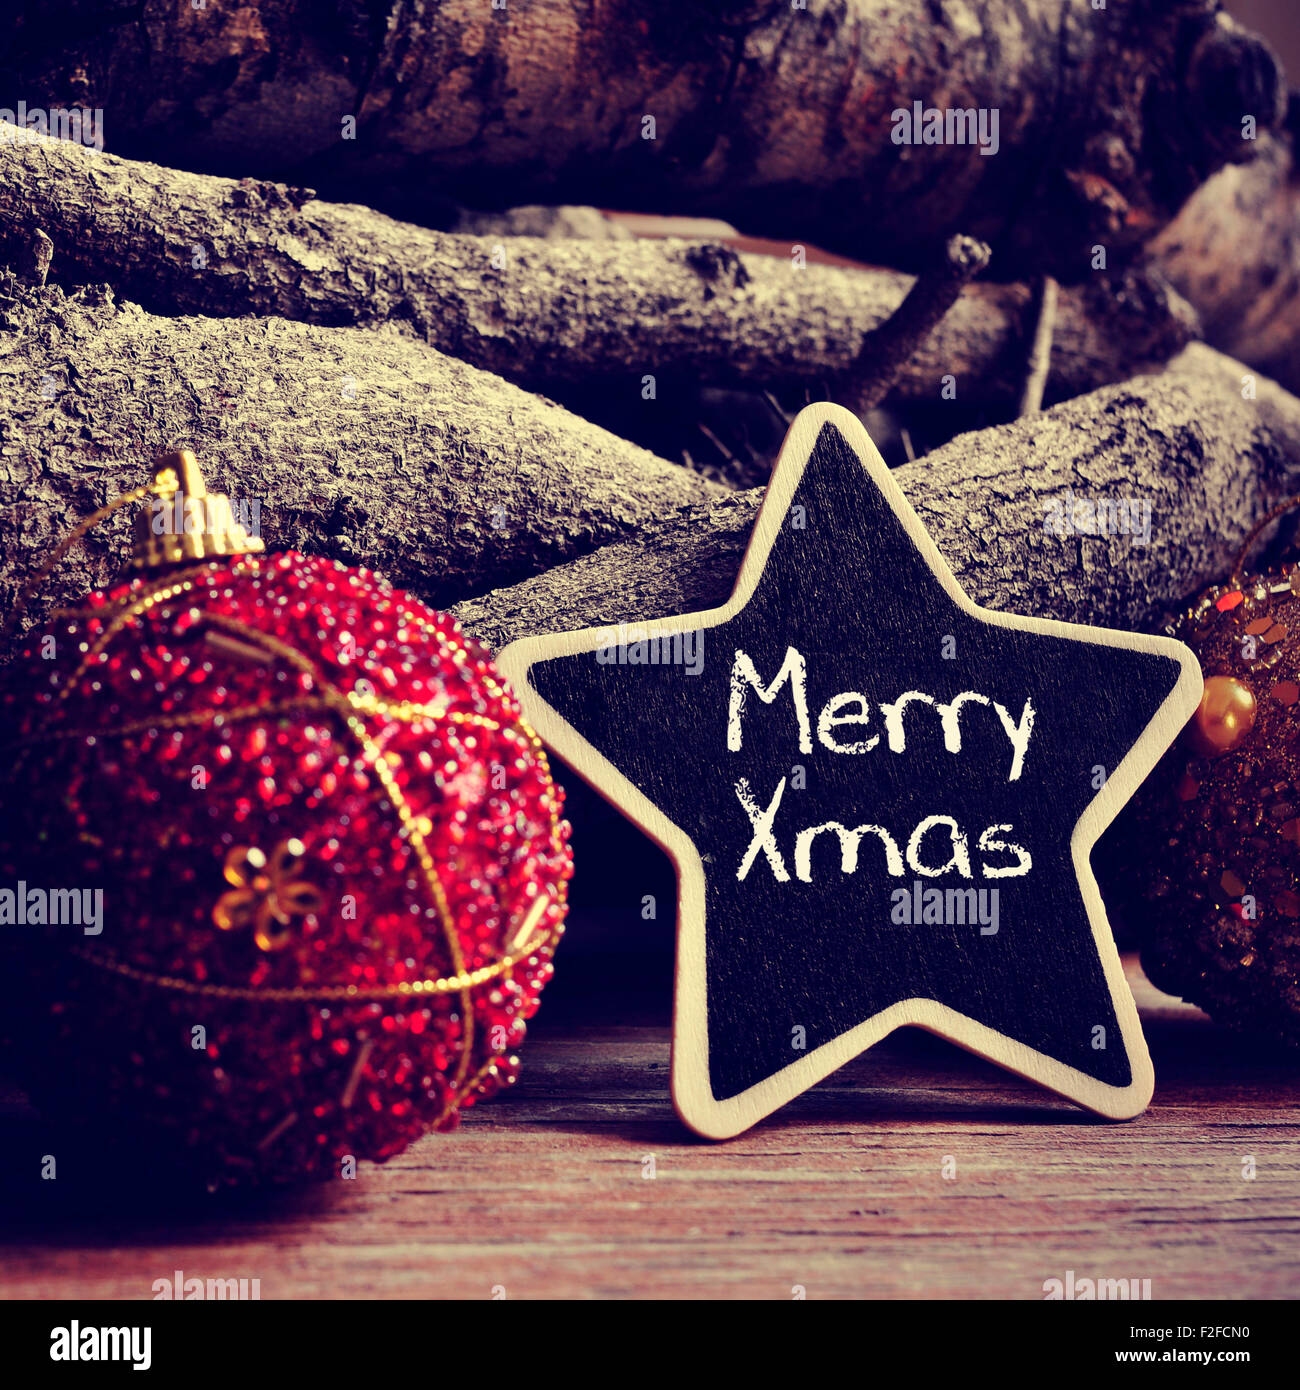 the text merry xmas written in a star-shaped blackboard, and some christmas ornaments, and pinecones and a pile - Stock Image